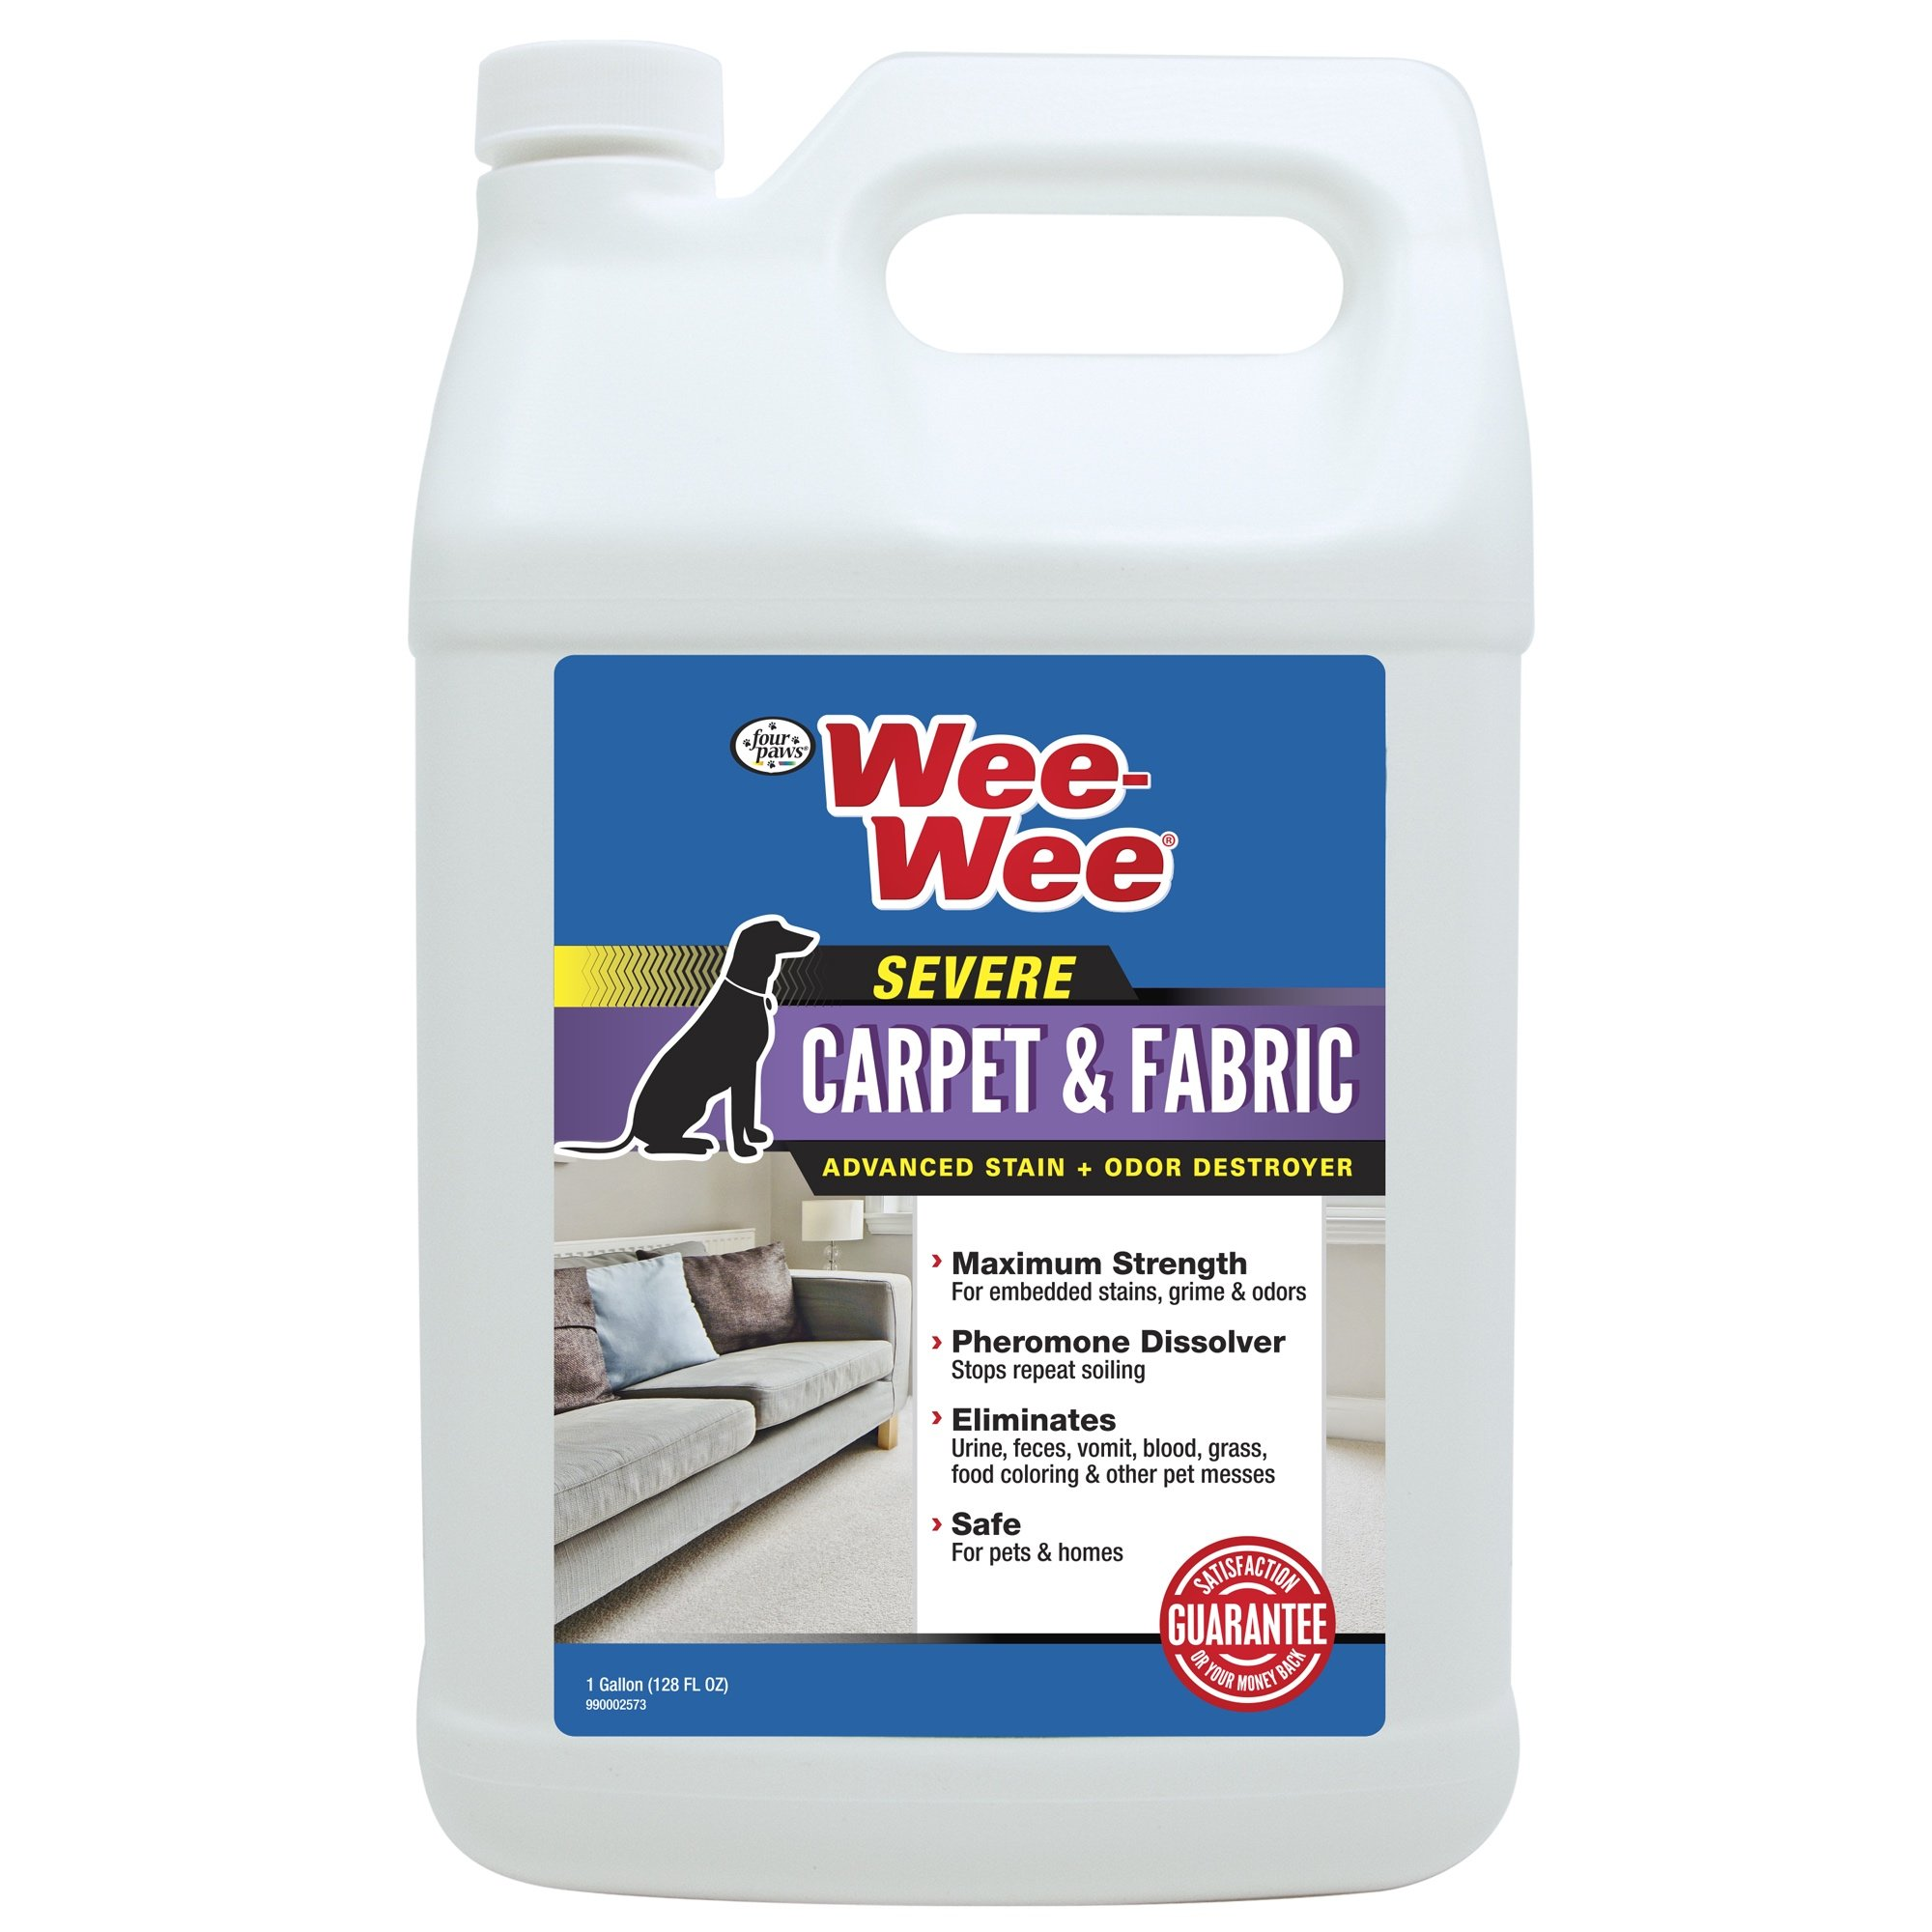 Four Paws Wee-Wee SEVERE Pet Stain & Odor Remover, Fabric & Carpet Stain Cleaner, 128 oz